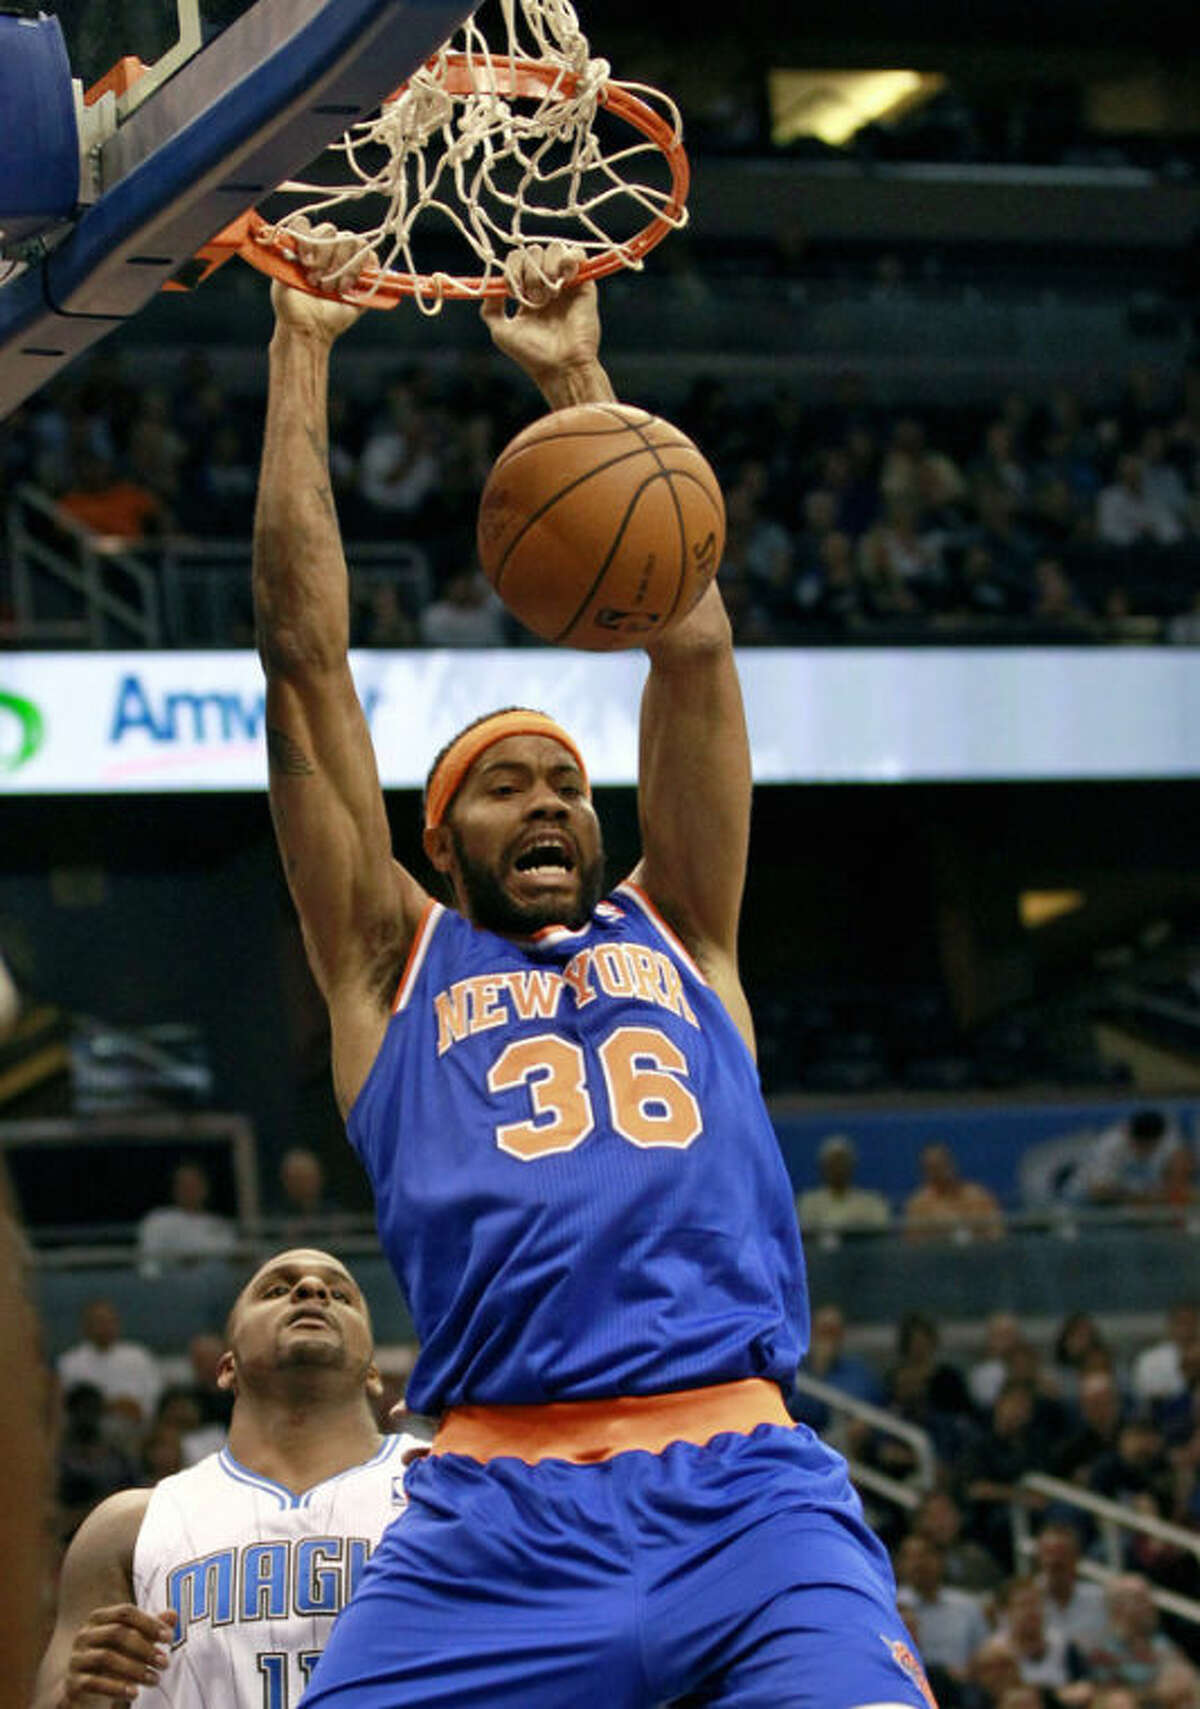 """FILE - In this Nov. 13, 2012 file photo, New York Knicks' Rasheed Wallace (36) dunks the ball in front of Orlando Magic's Glen Davis, left, during the first half of an NBA basketball game in Orlando, Fla. Wallace has retired again from the NBA after he was unable to recover from a left foot injury. The Knicks say in a statement that because of his injury Wallace """"will not be available to play for us during the playoffs.""""(AP Photo/John Raoux, File)"""